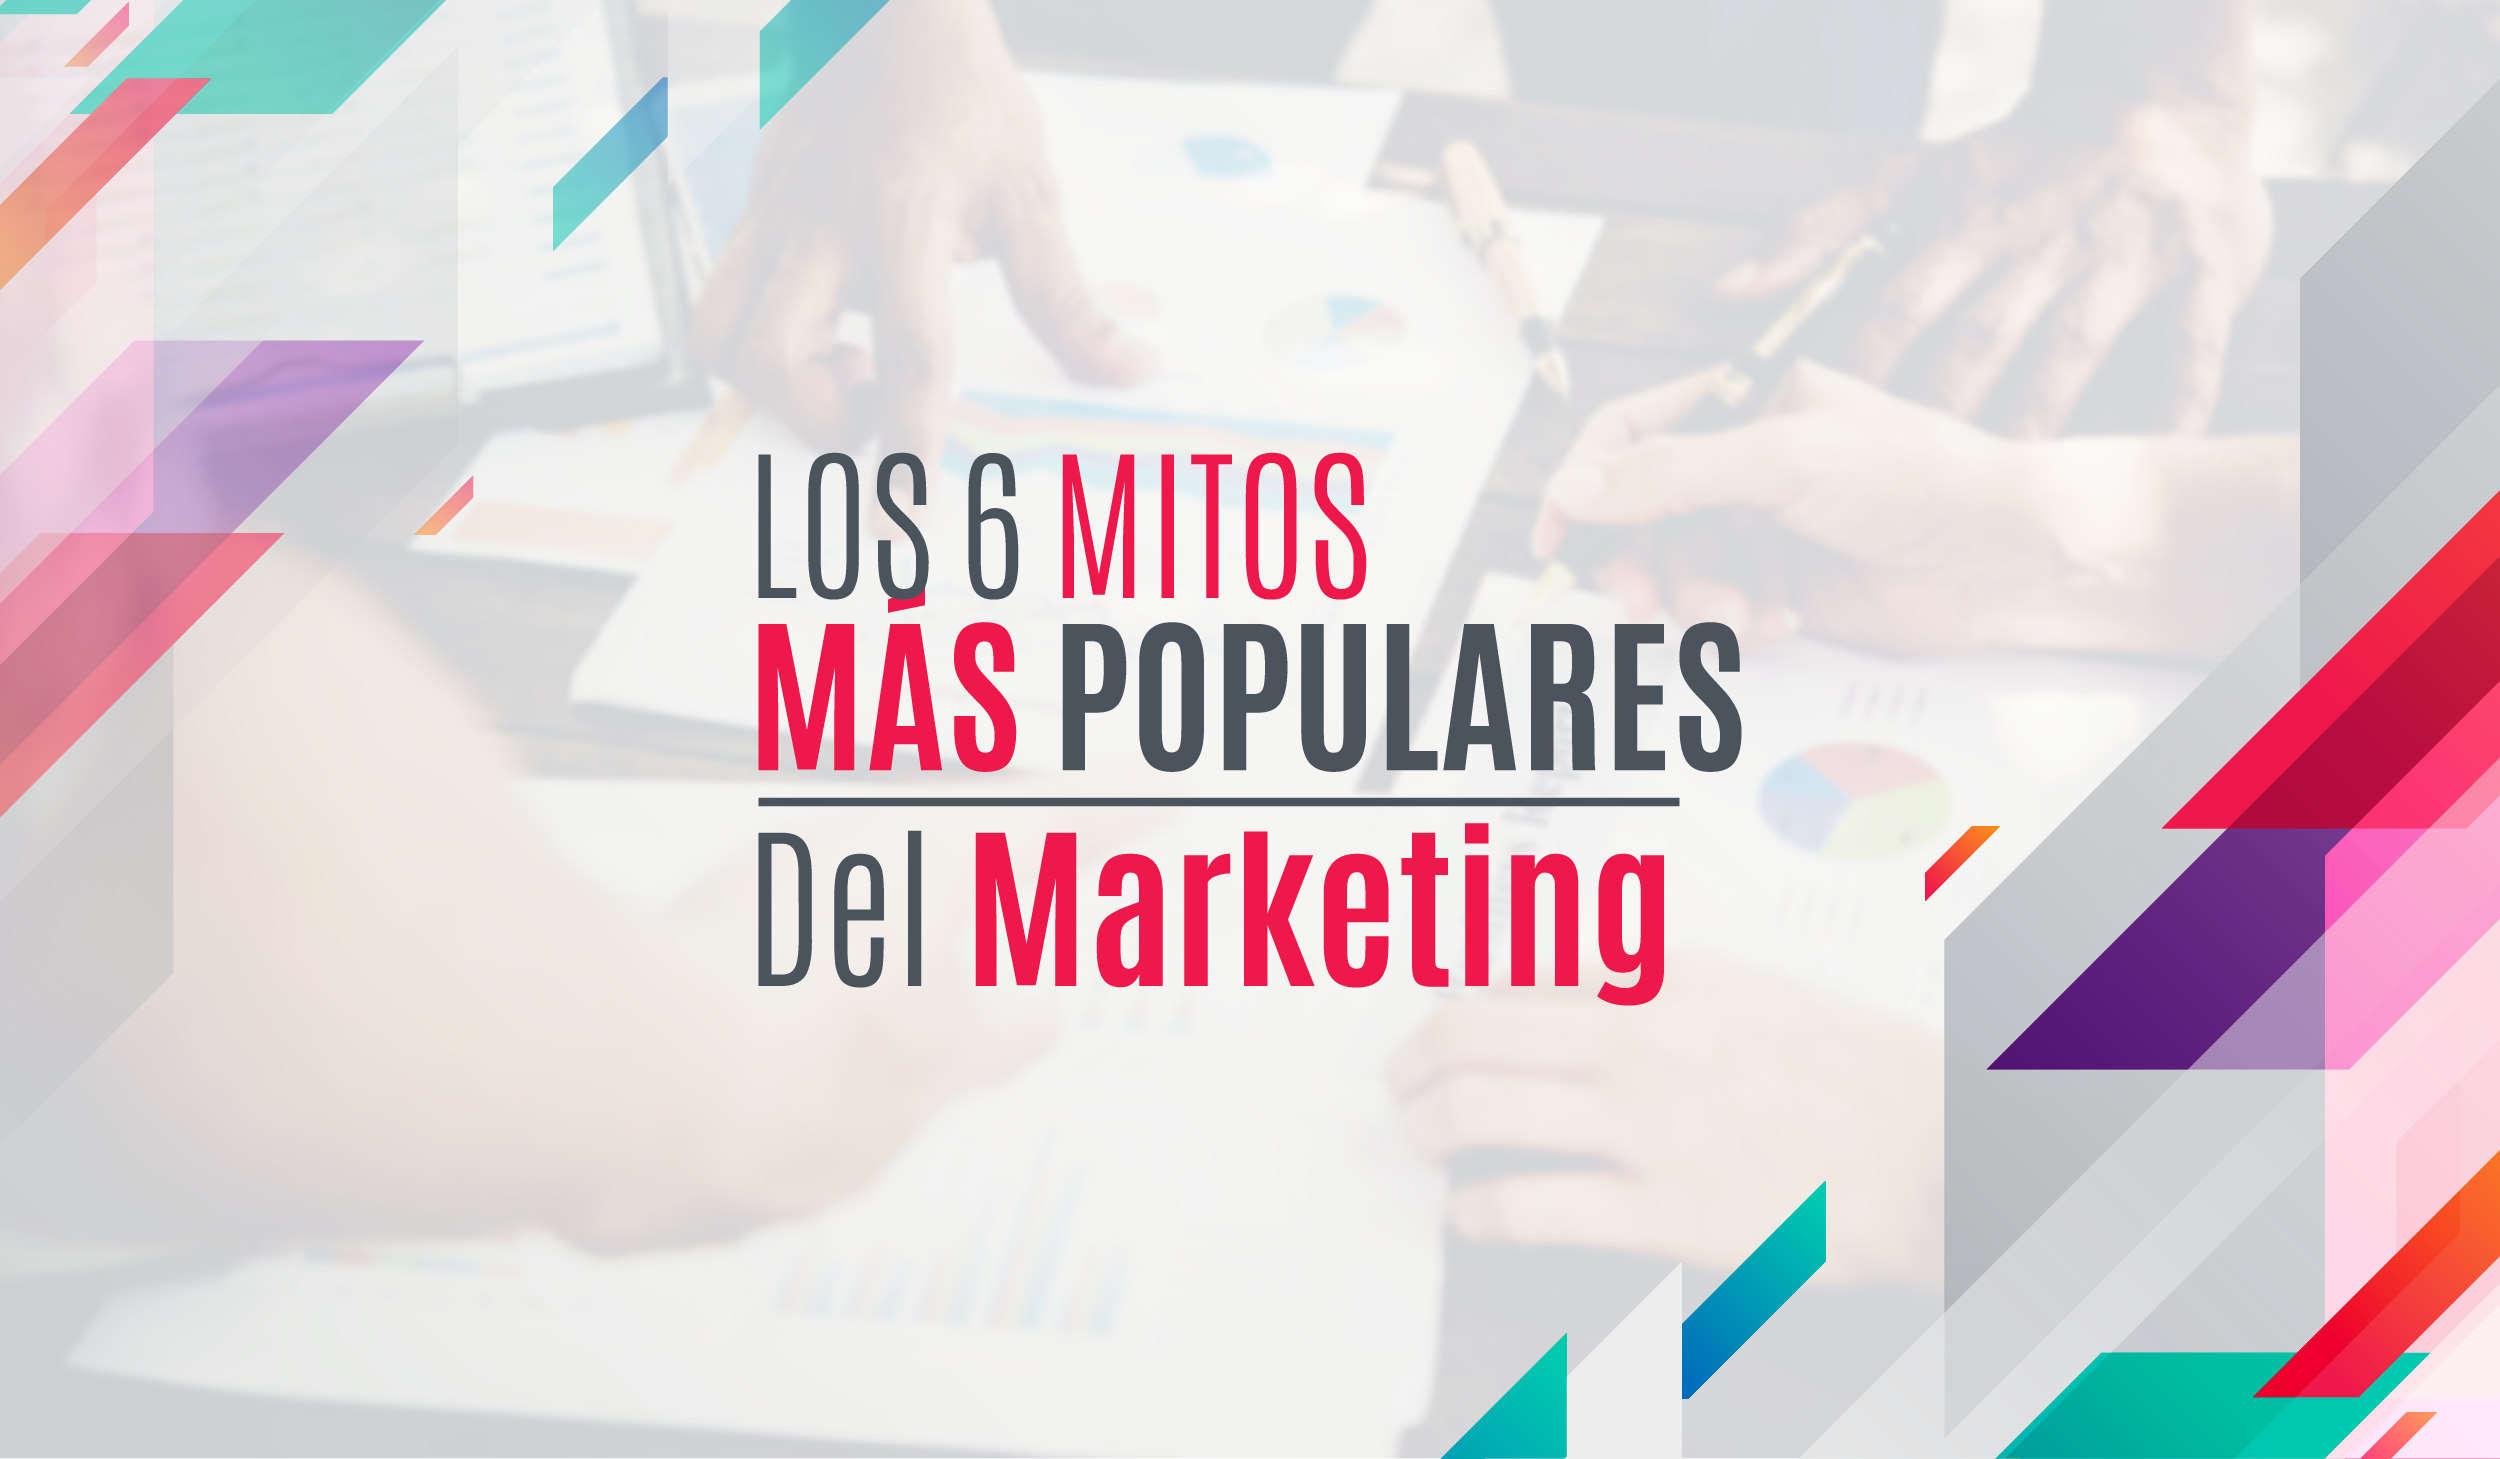 Los 6 mitos mas populares del marketing - post - marketing digital